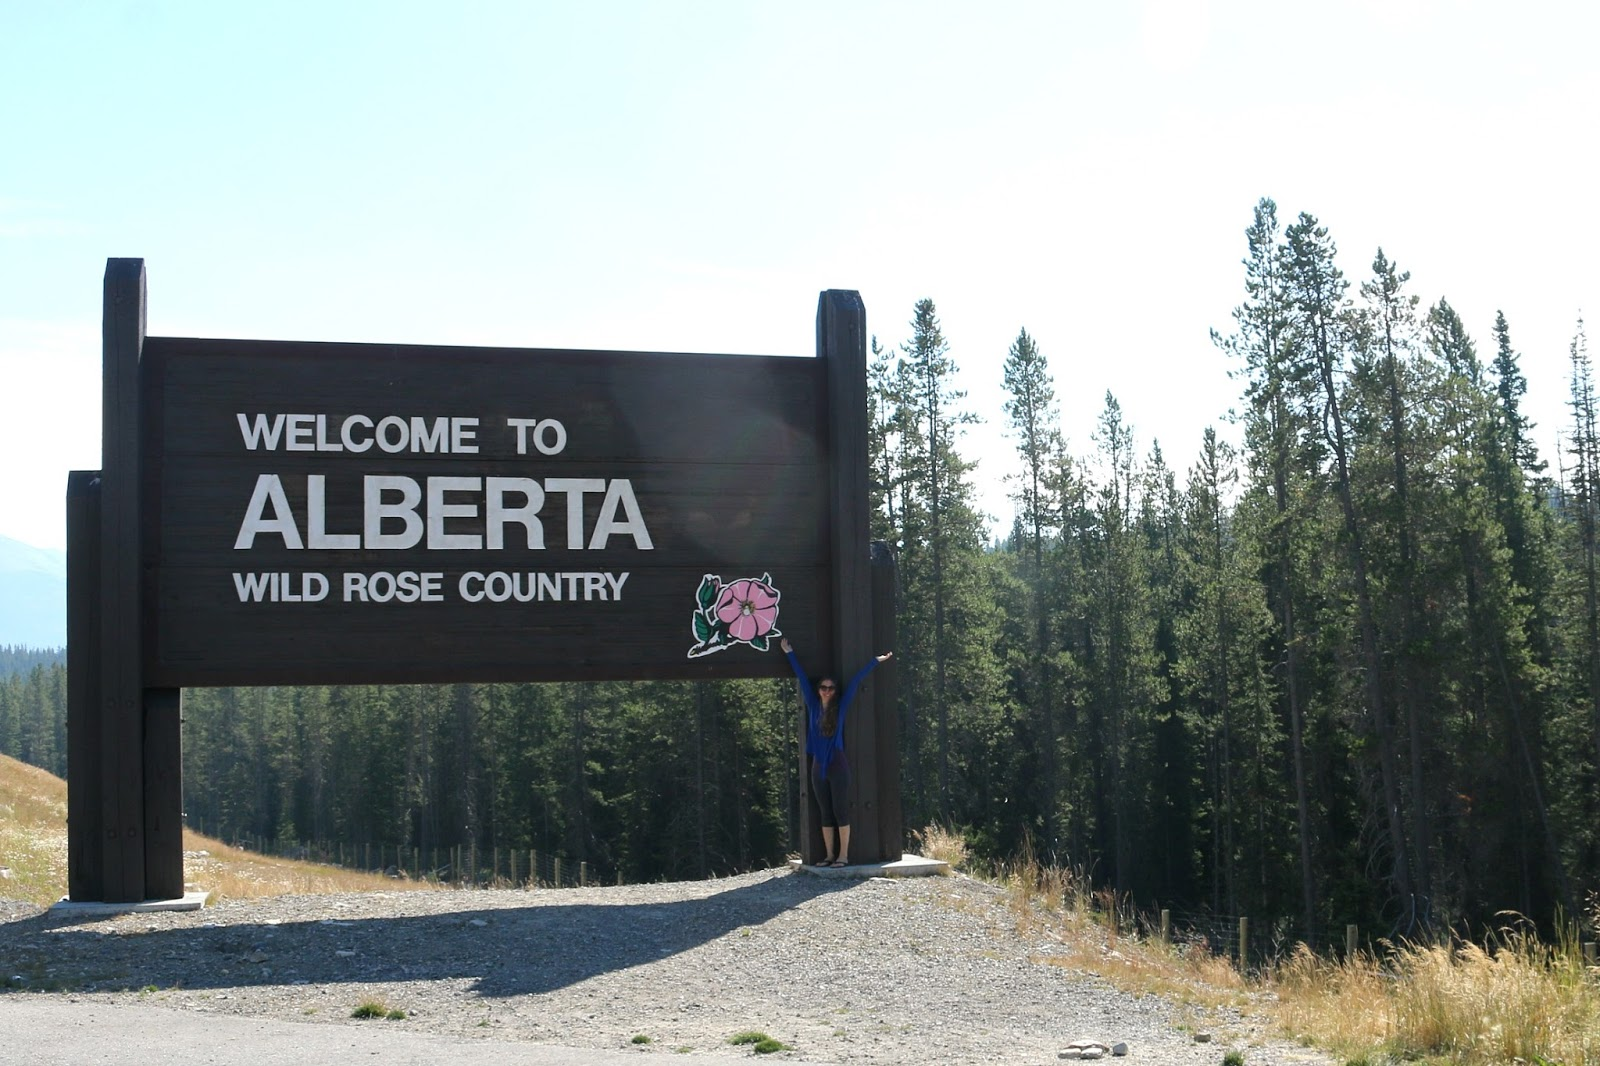 Welcome To Alberta Sign Banff National Park Alberta Canada